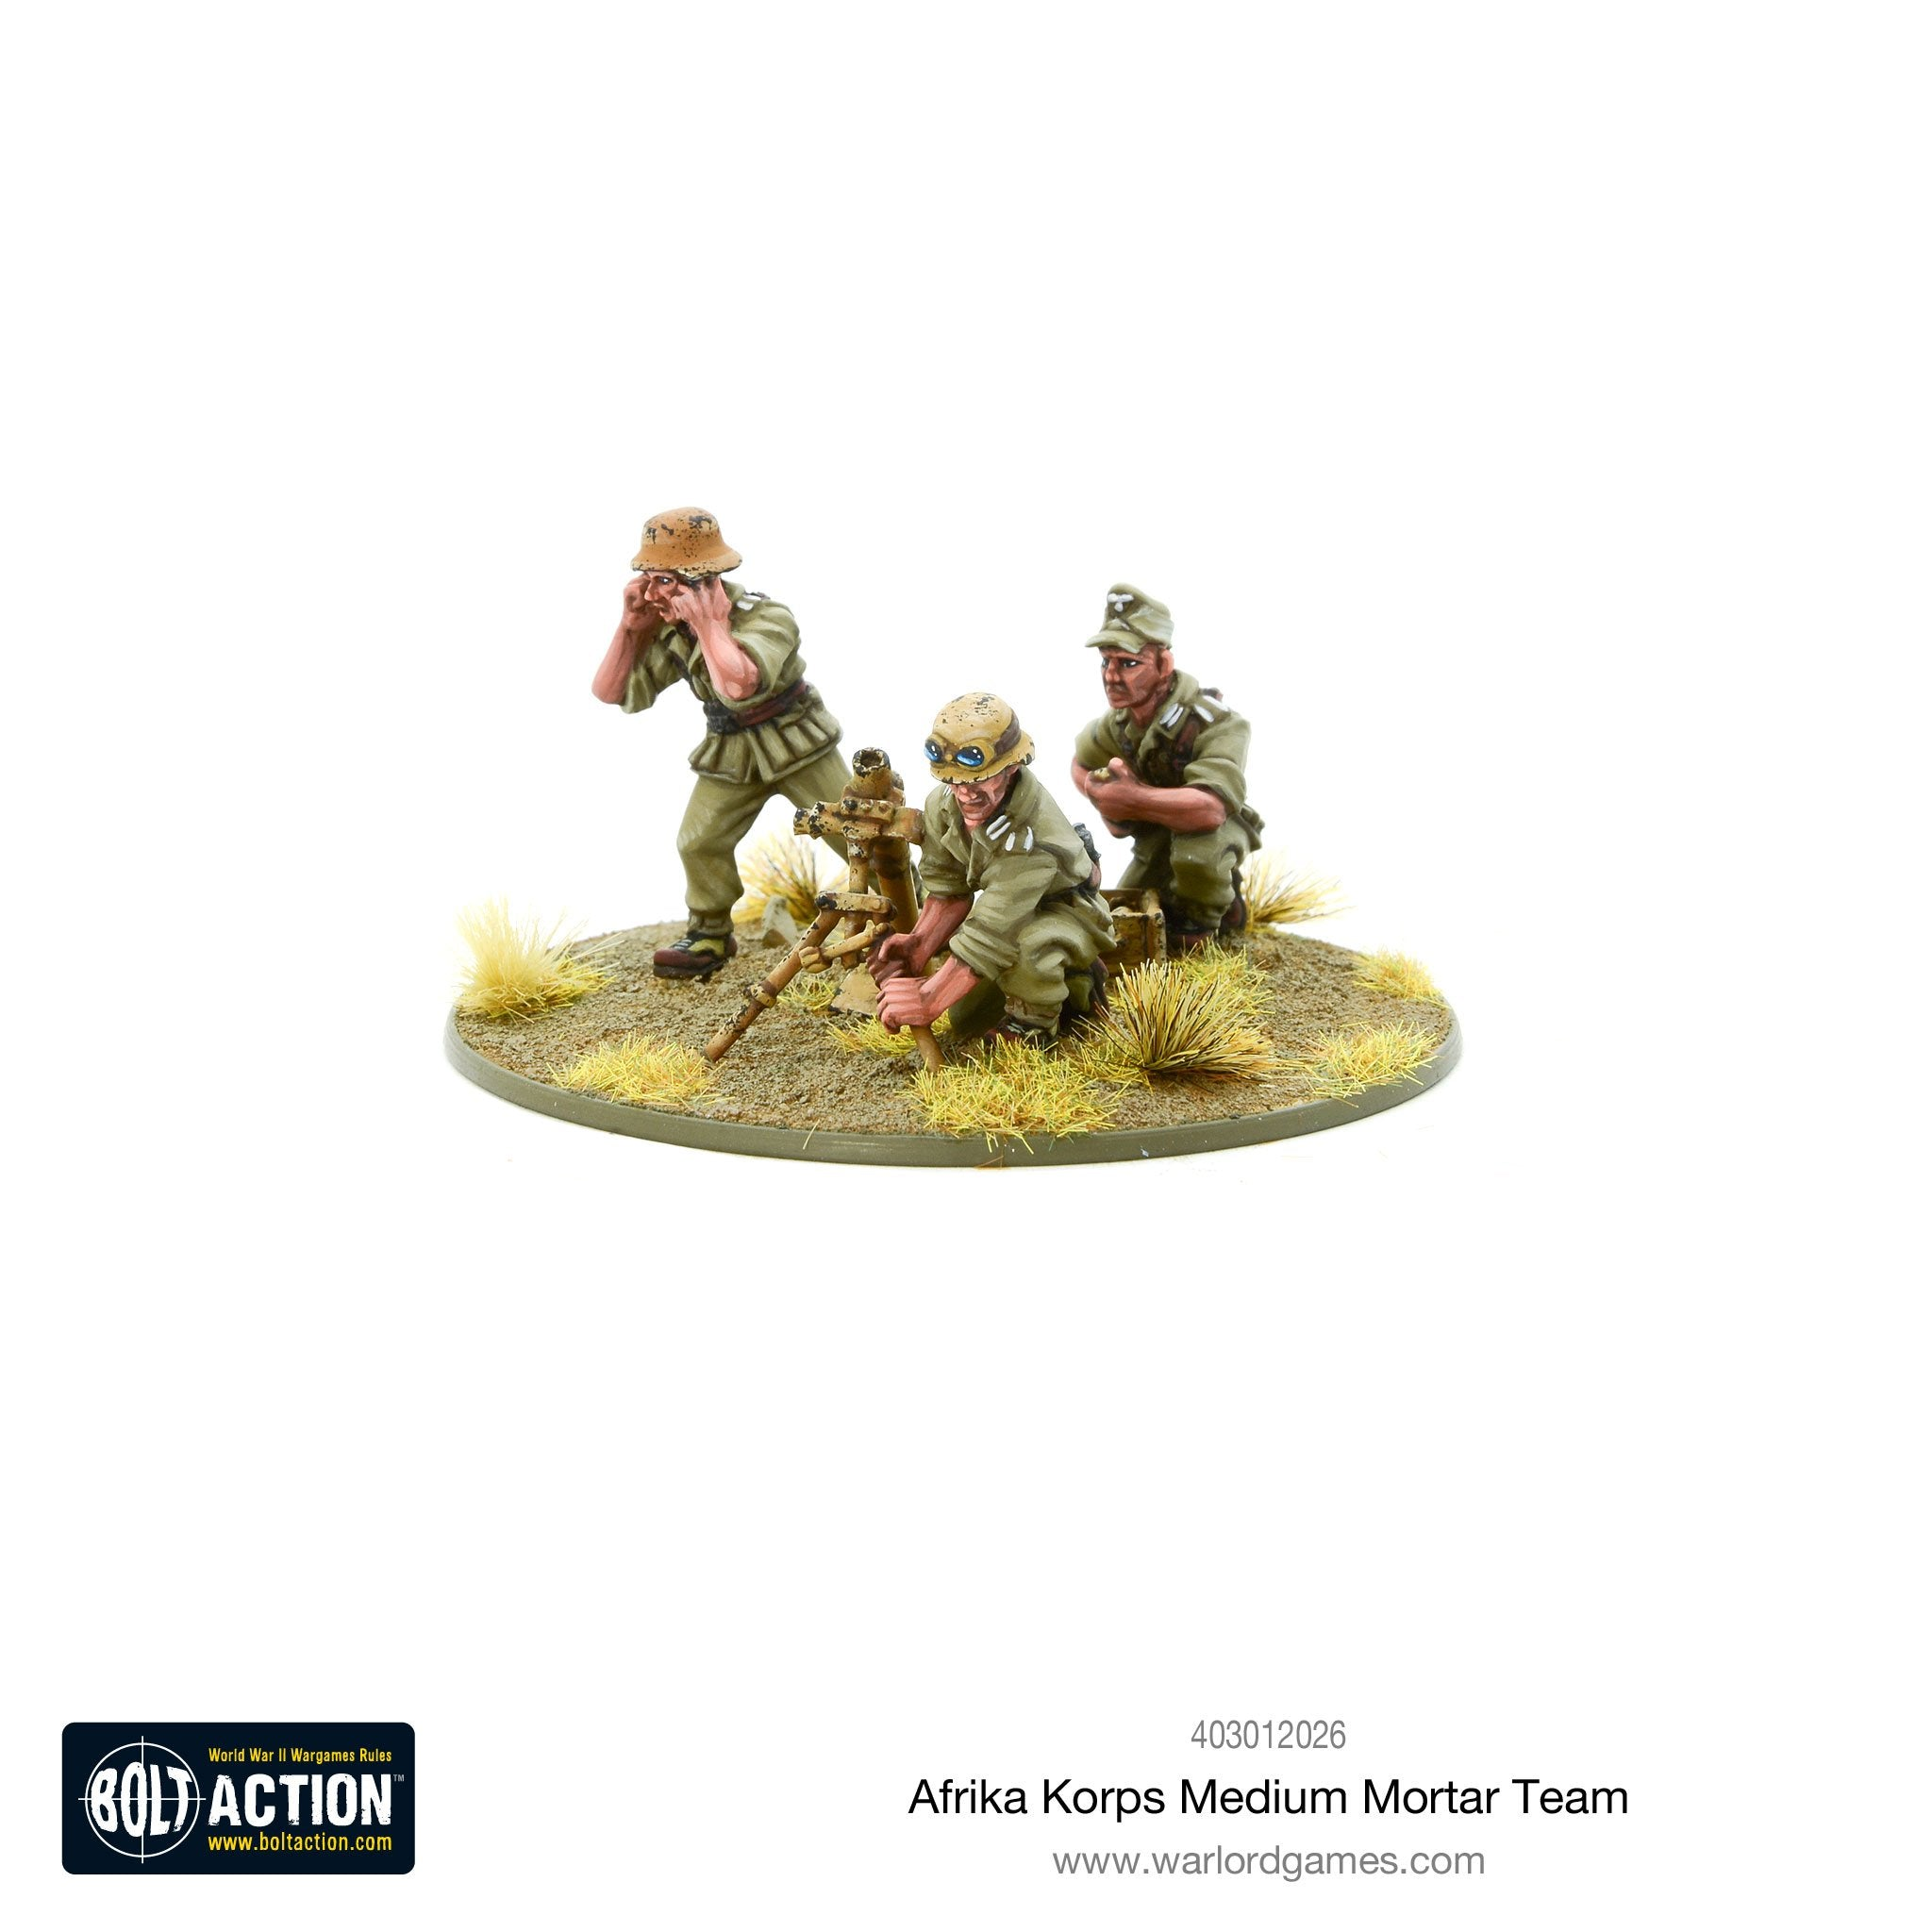 Afrika Korps Medium Mortar Team | Mythicos